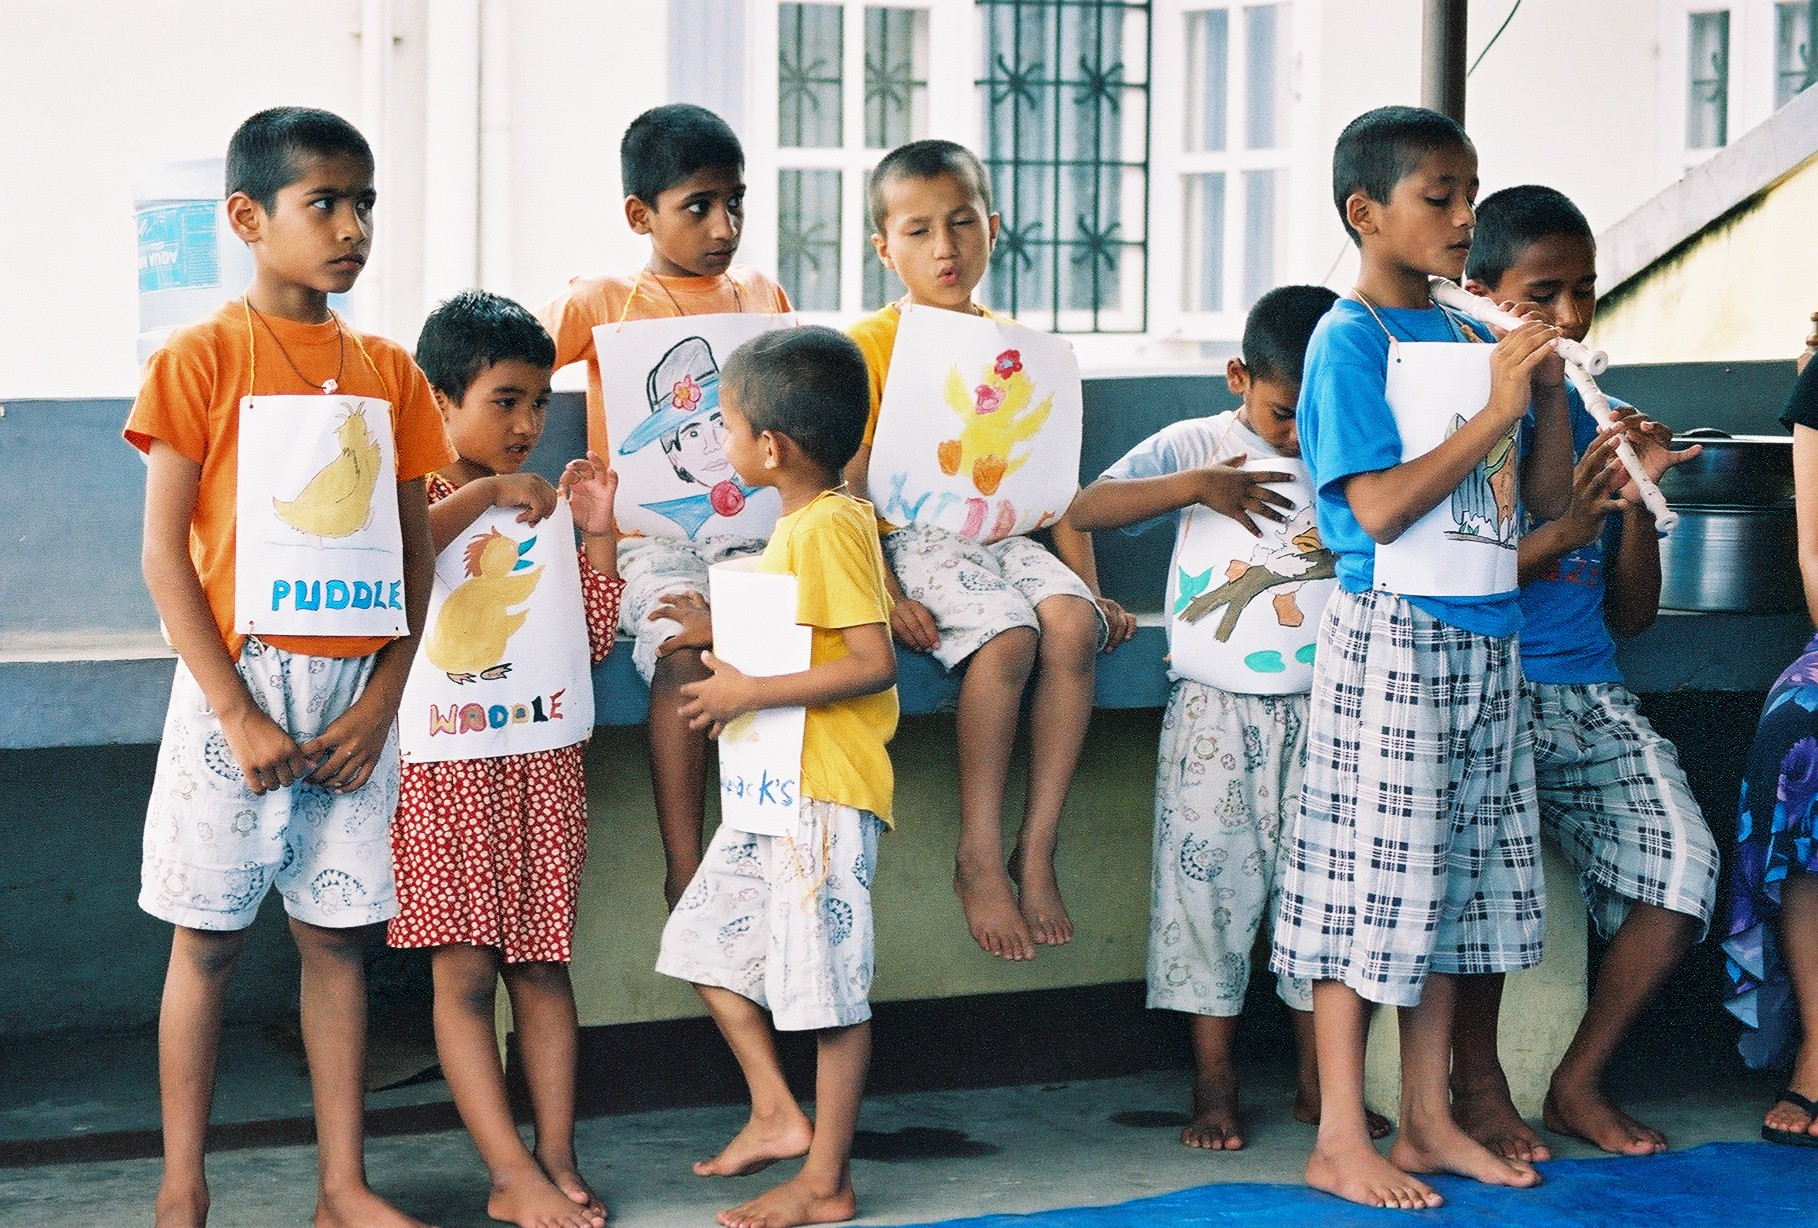 Children from Home of Hope in Kathmandu, Nepal gather to share drawings they made during an activity time in 2005.